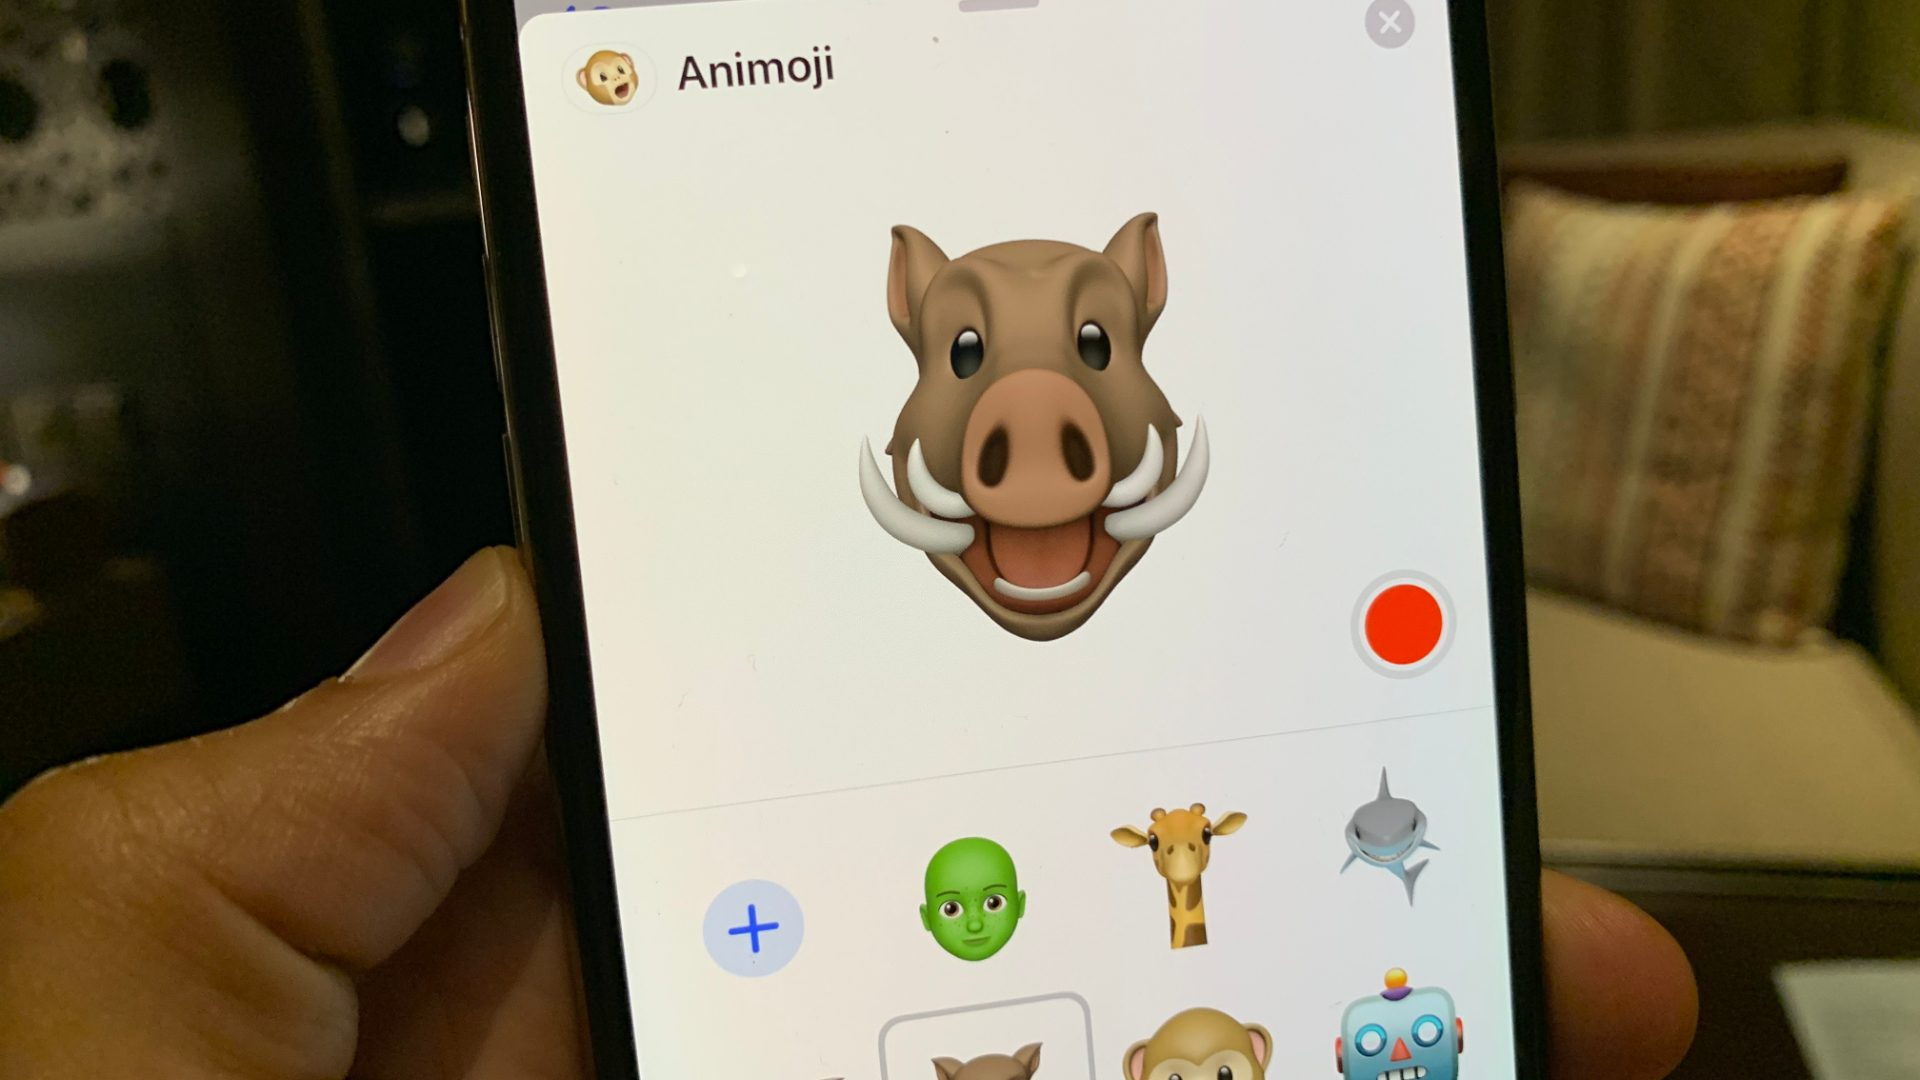 Apple latest iOS 12.2 comes with 4 new added Animoji